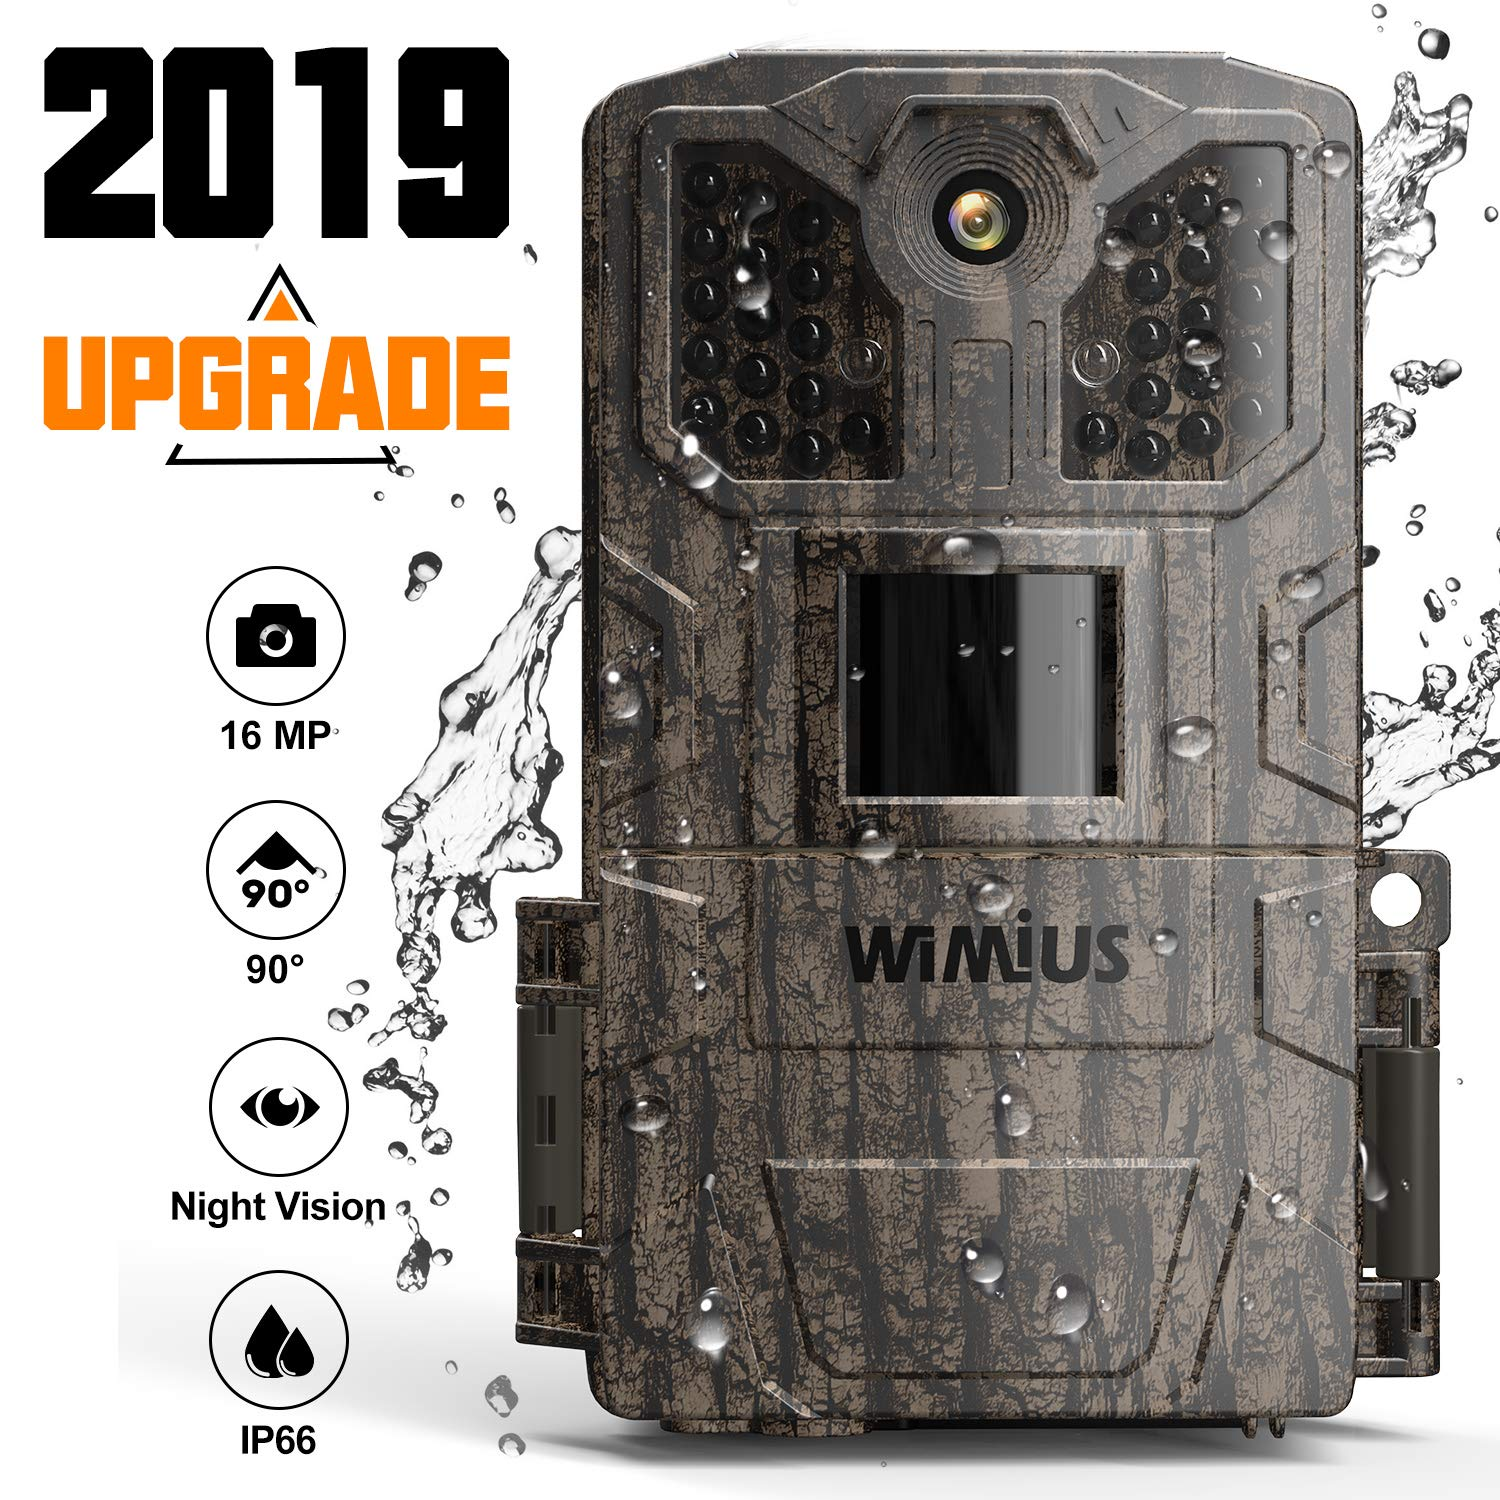 Trail Camera,Game Camera 2019 Upgraded 16M 1080P Hunting Camera with Night Vision Motion Activated Waterproof up to 70ft 0.5s Trigger Speed for Home Security Wildlife Animal Cameras by WiMiUS